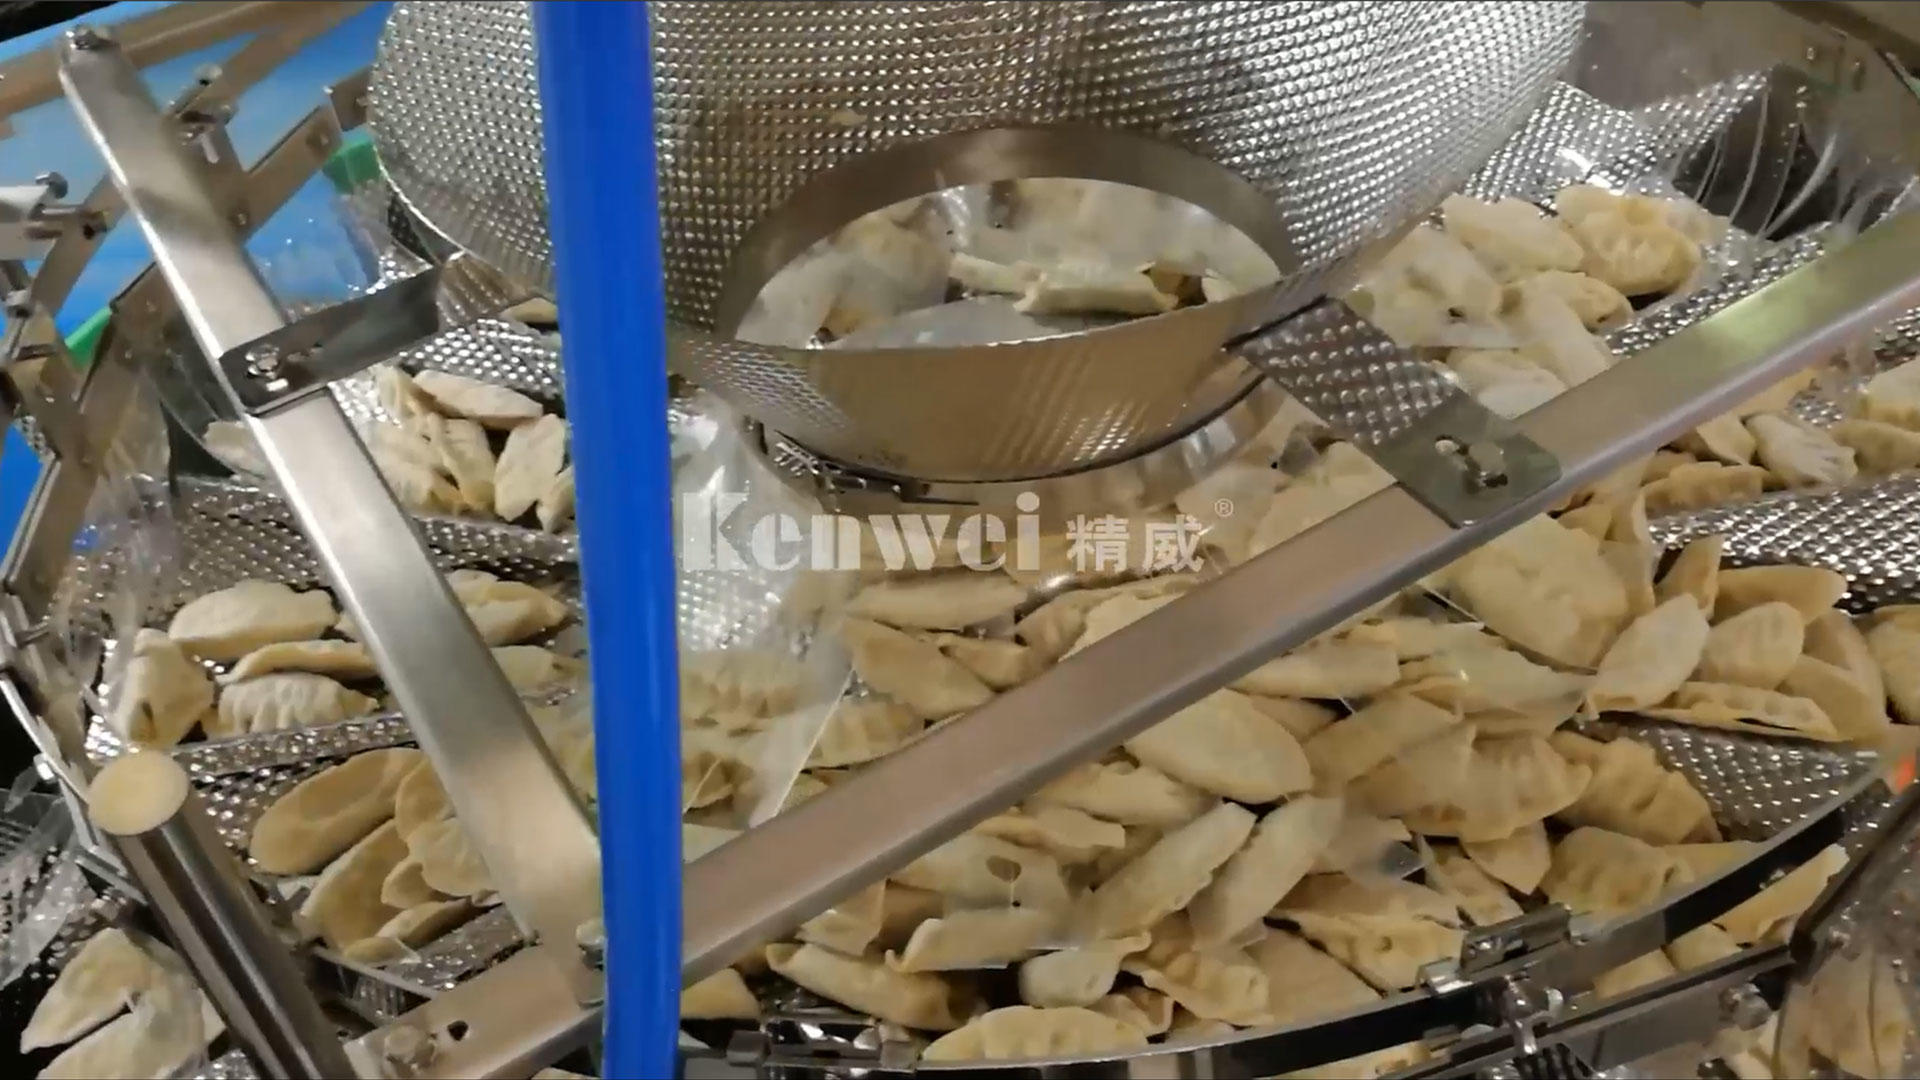 Kenwei door services provide customers with automated dumpling packaging system